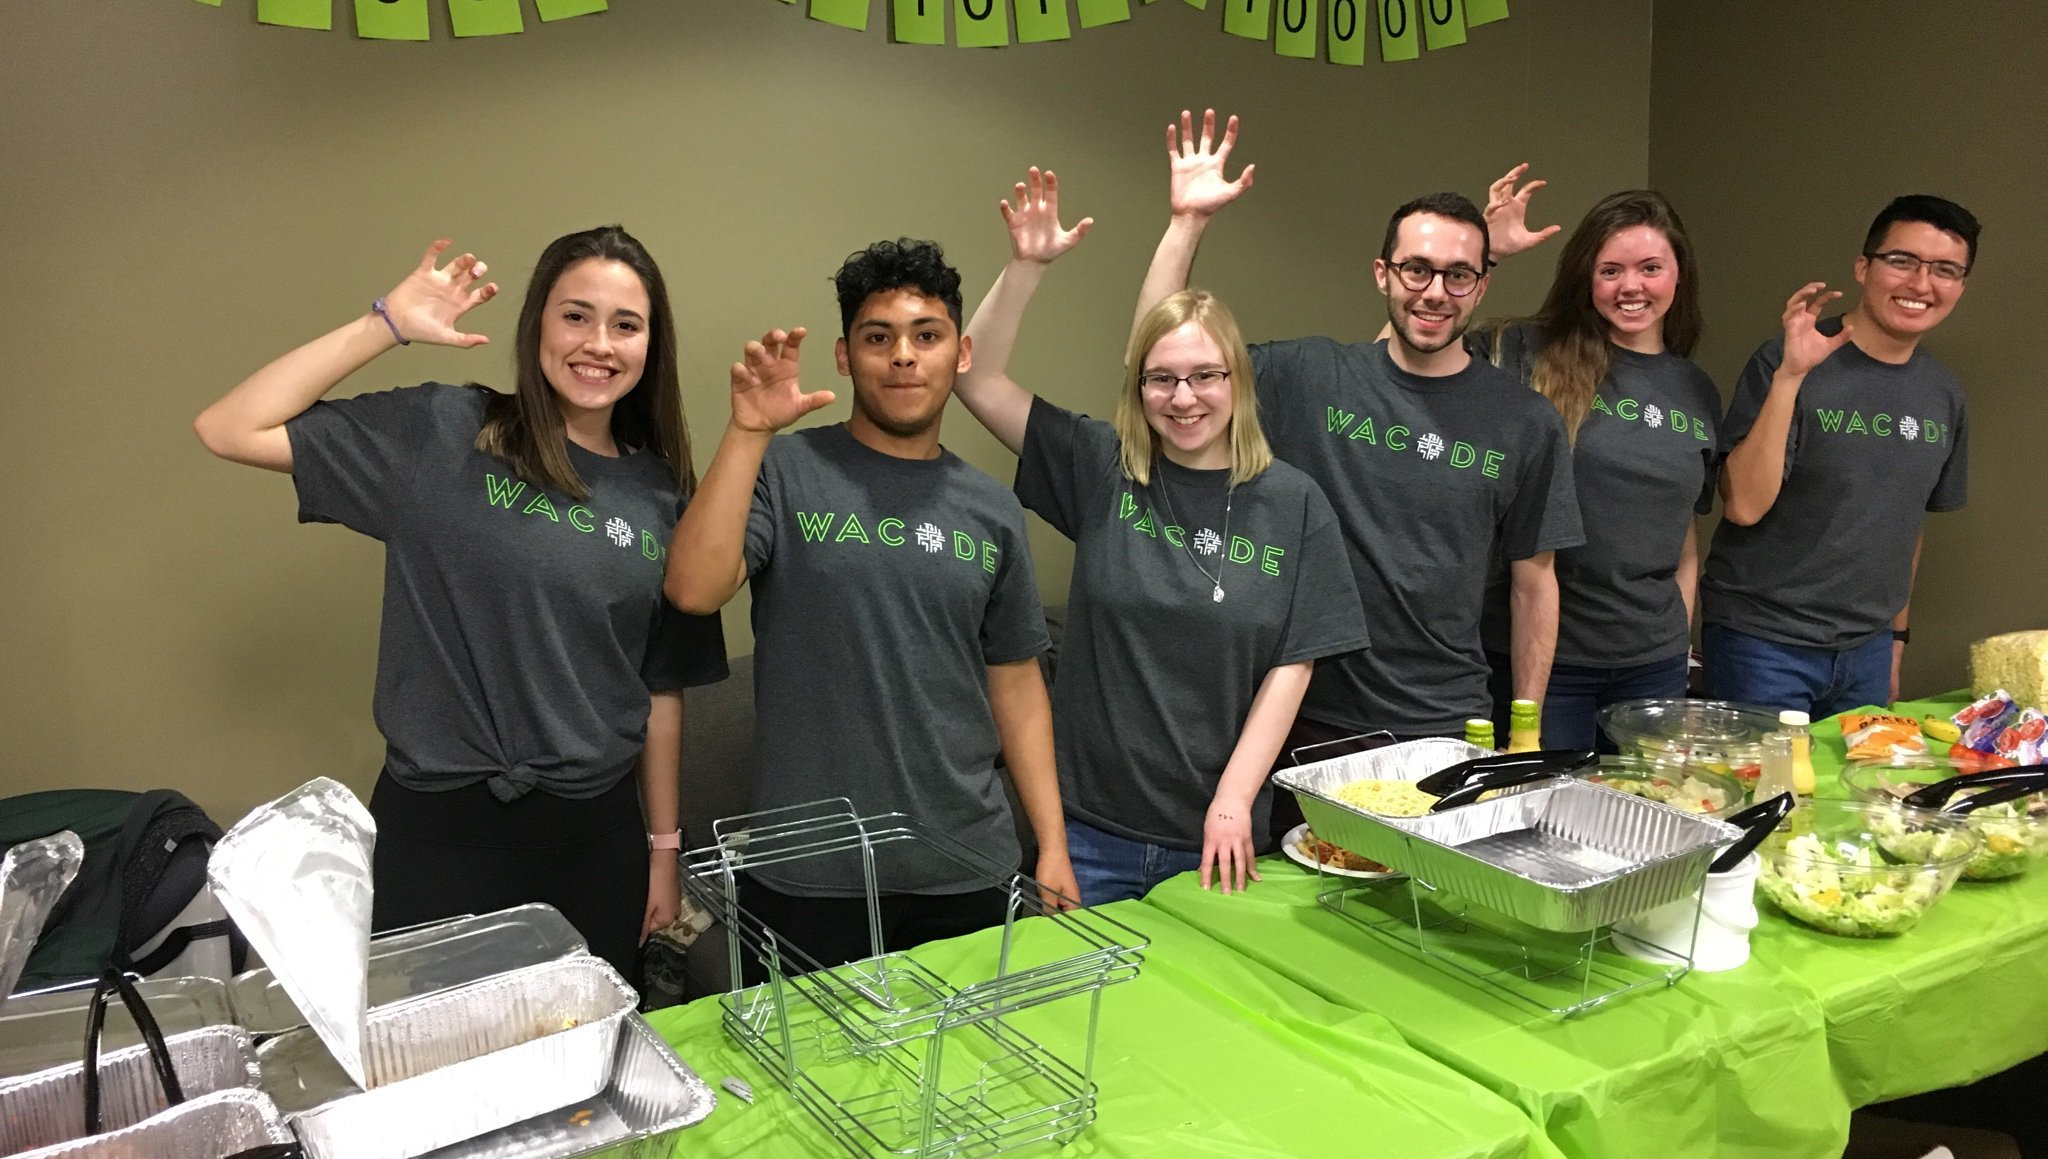 Members of The Wacode Team after feeding some hungry hackers!